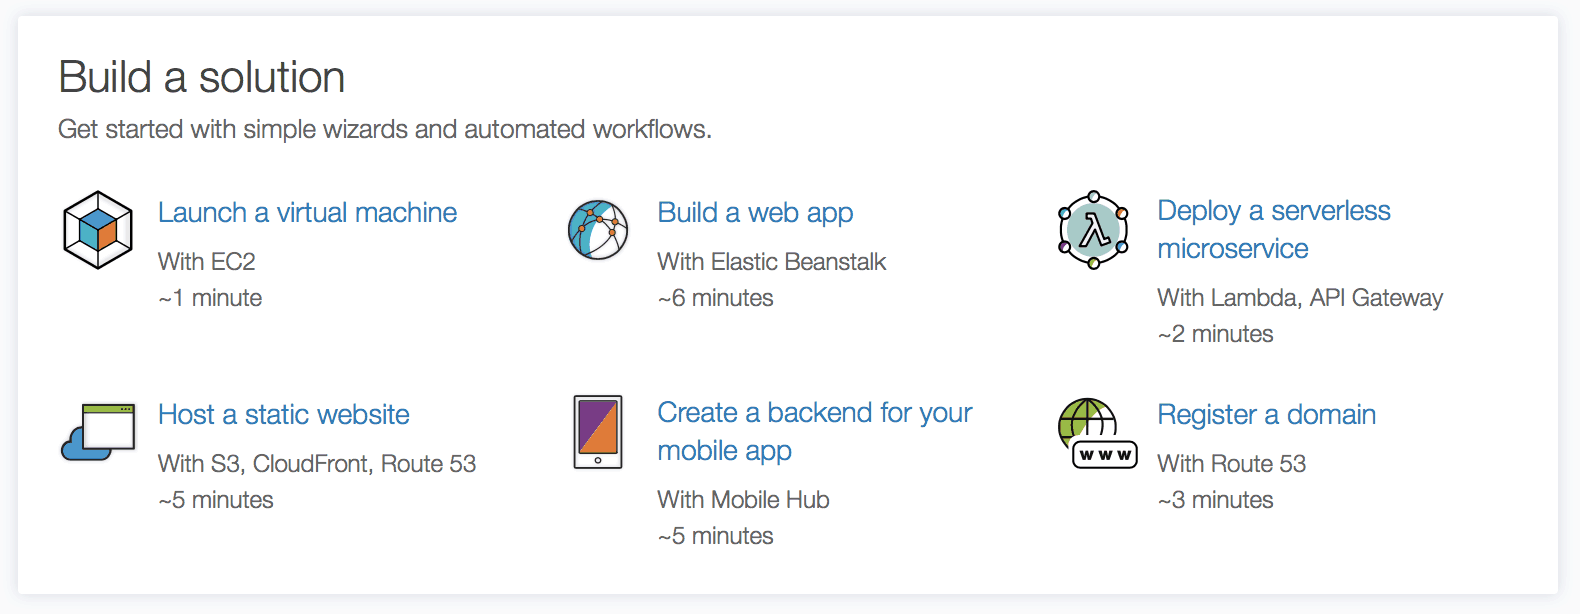 aws free resources build a solution